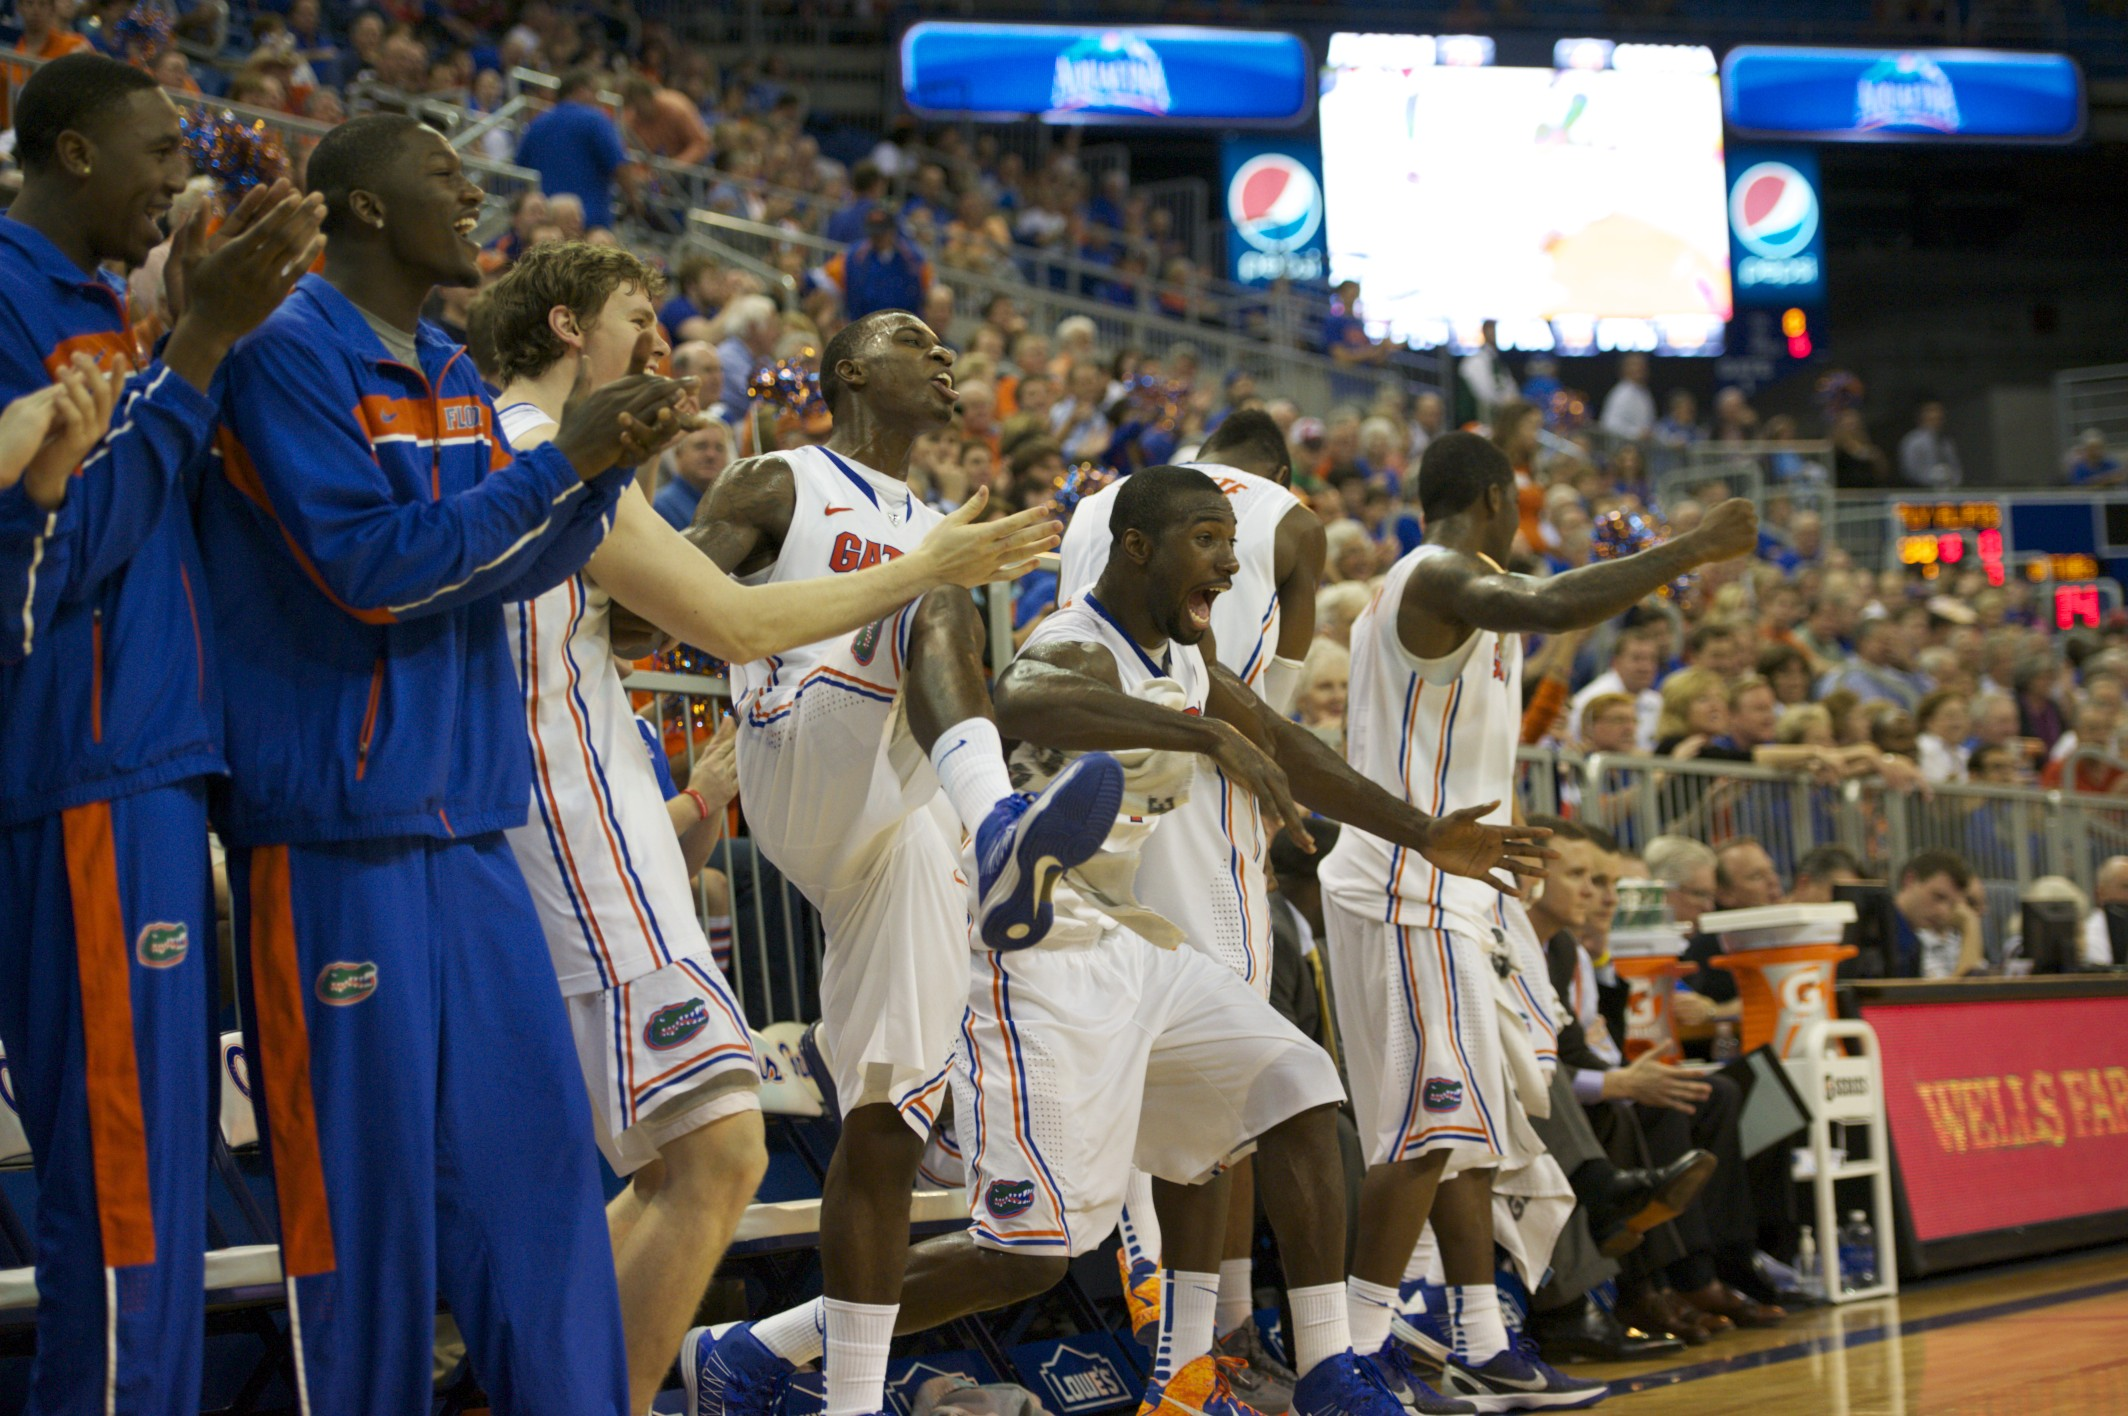 Florida's bench celebrated through the last minute of the game as they took the victory over Gerogia, 77-44.